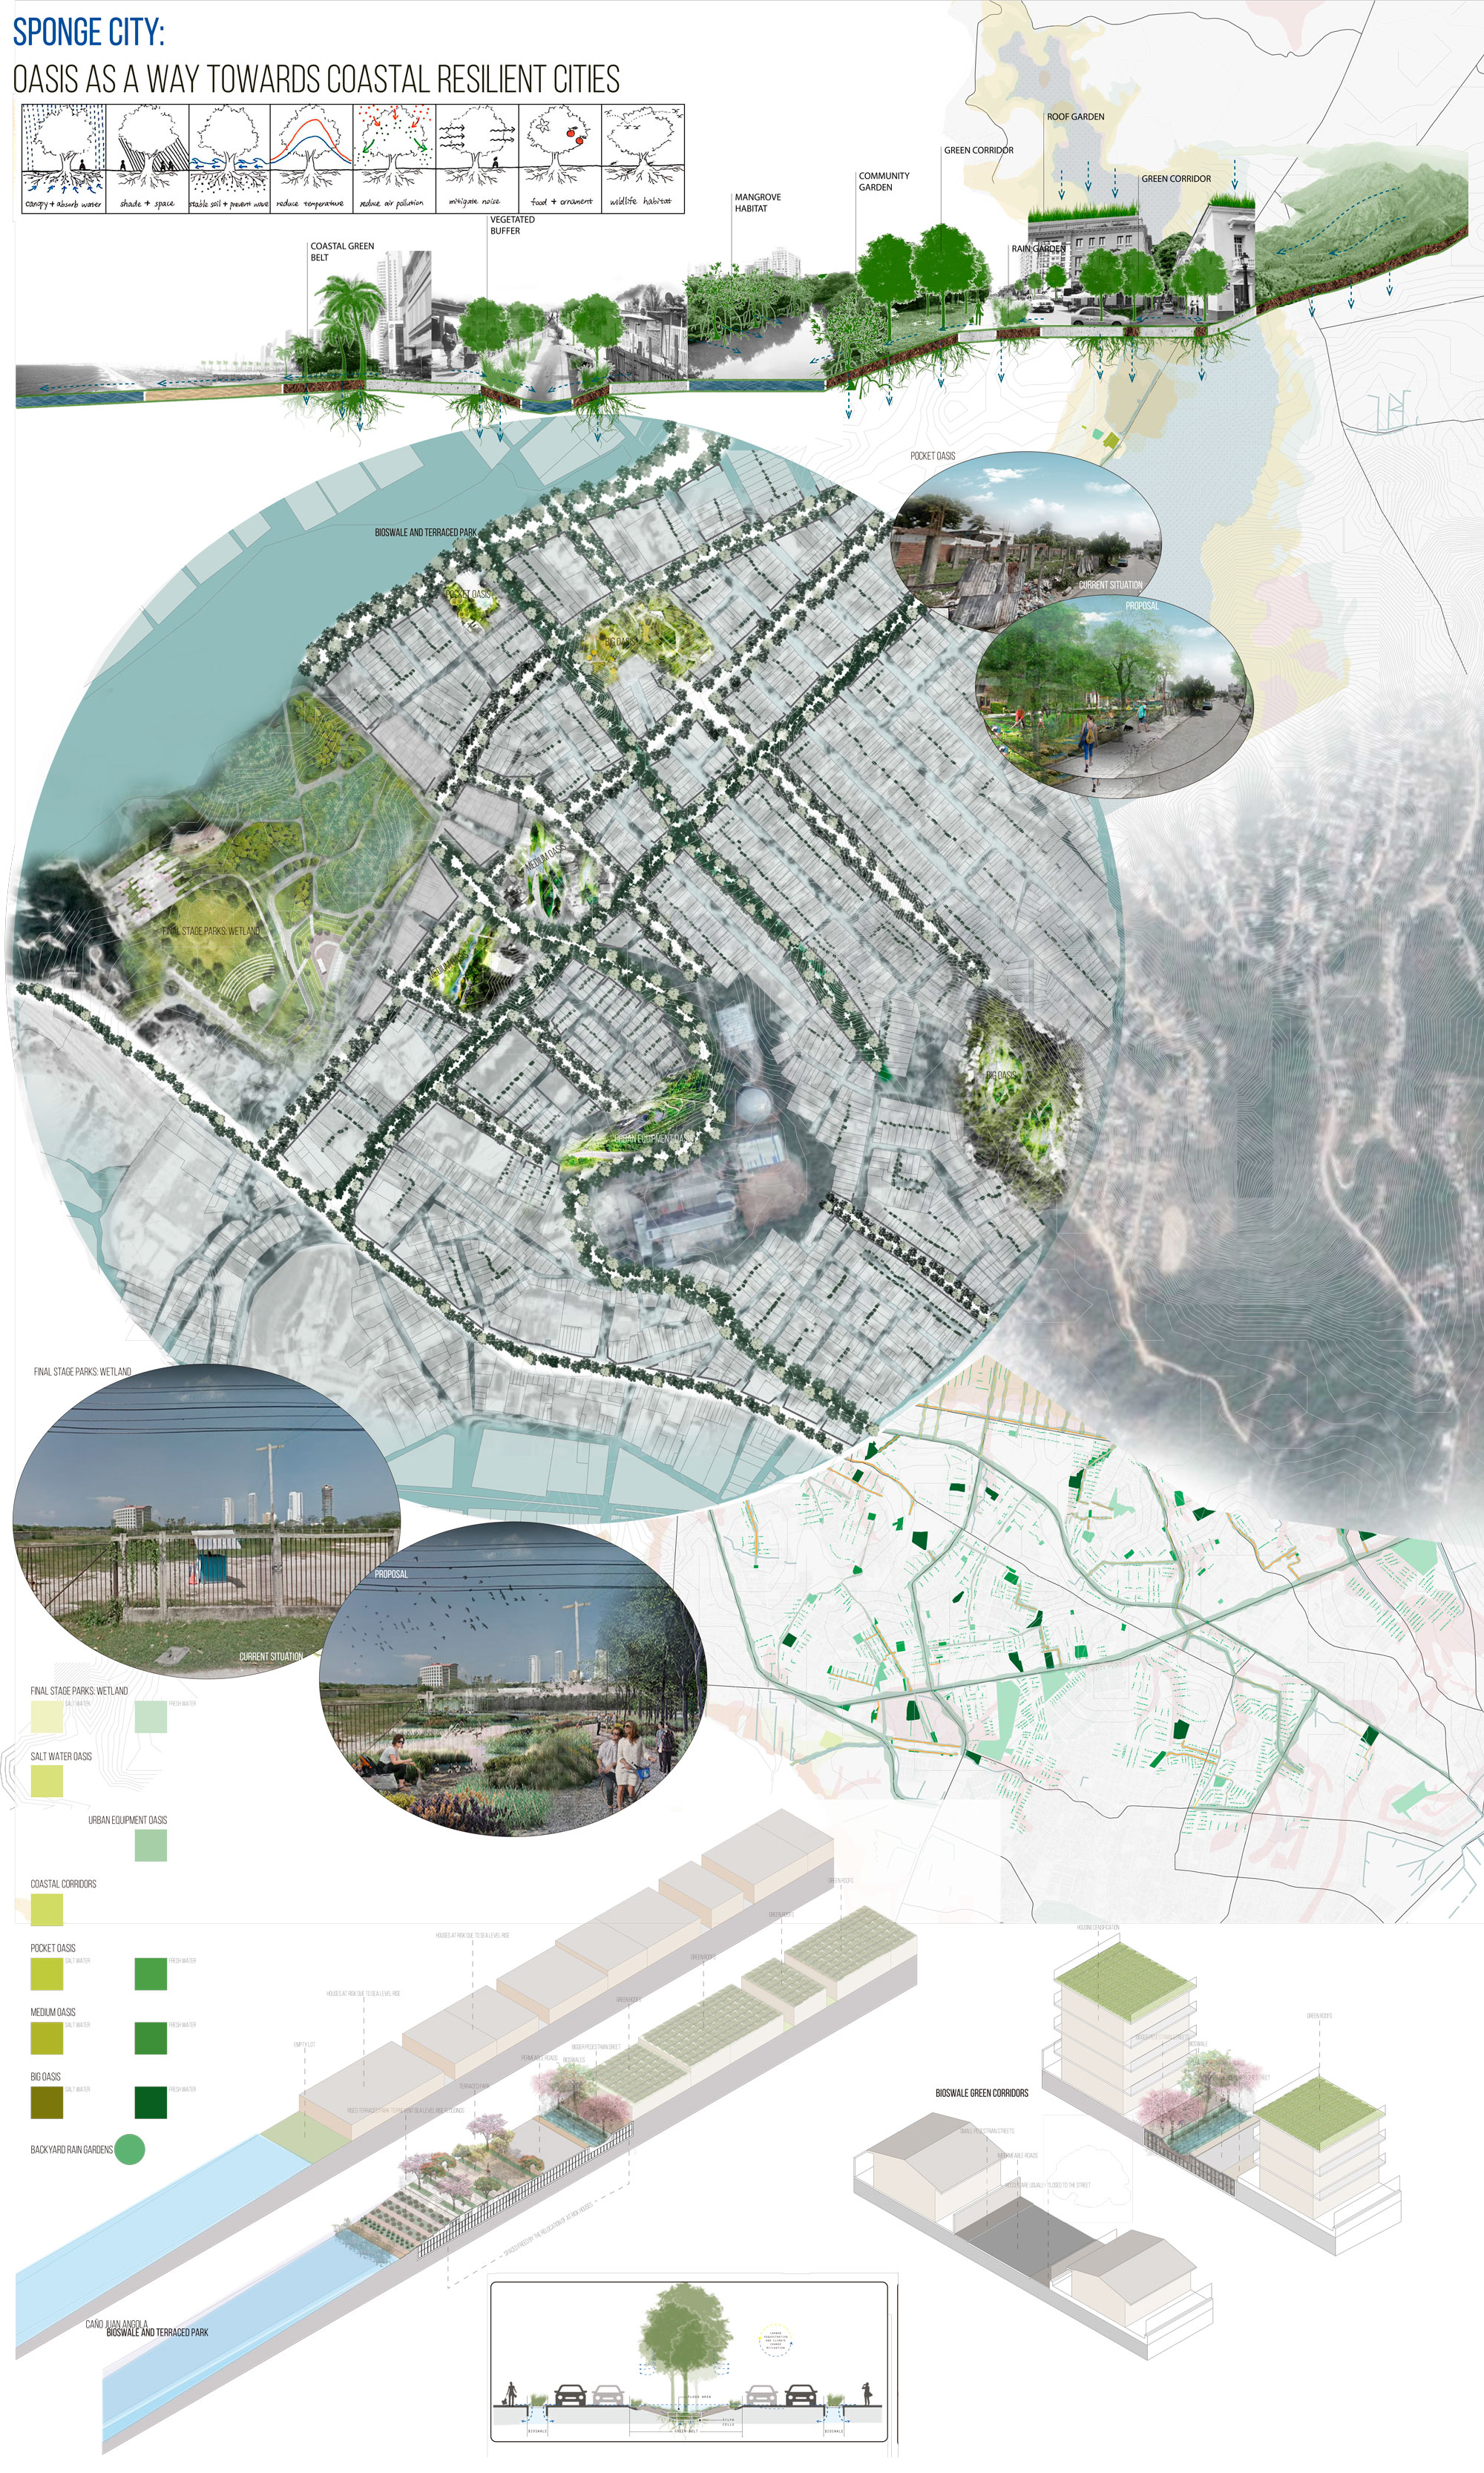 Sponge City: Oasis As A Way Towards Coastal Resilient